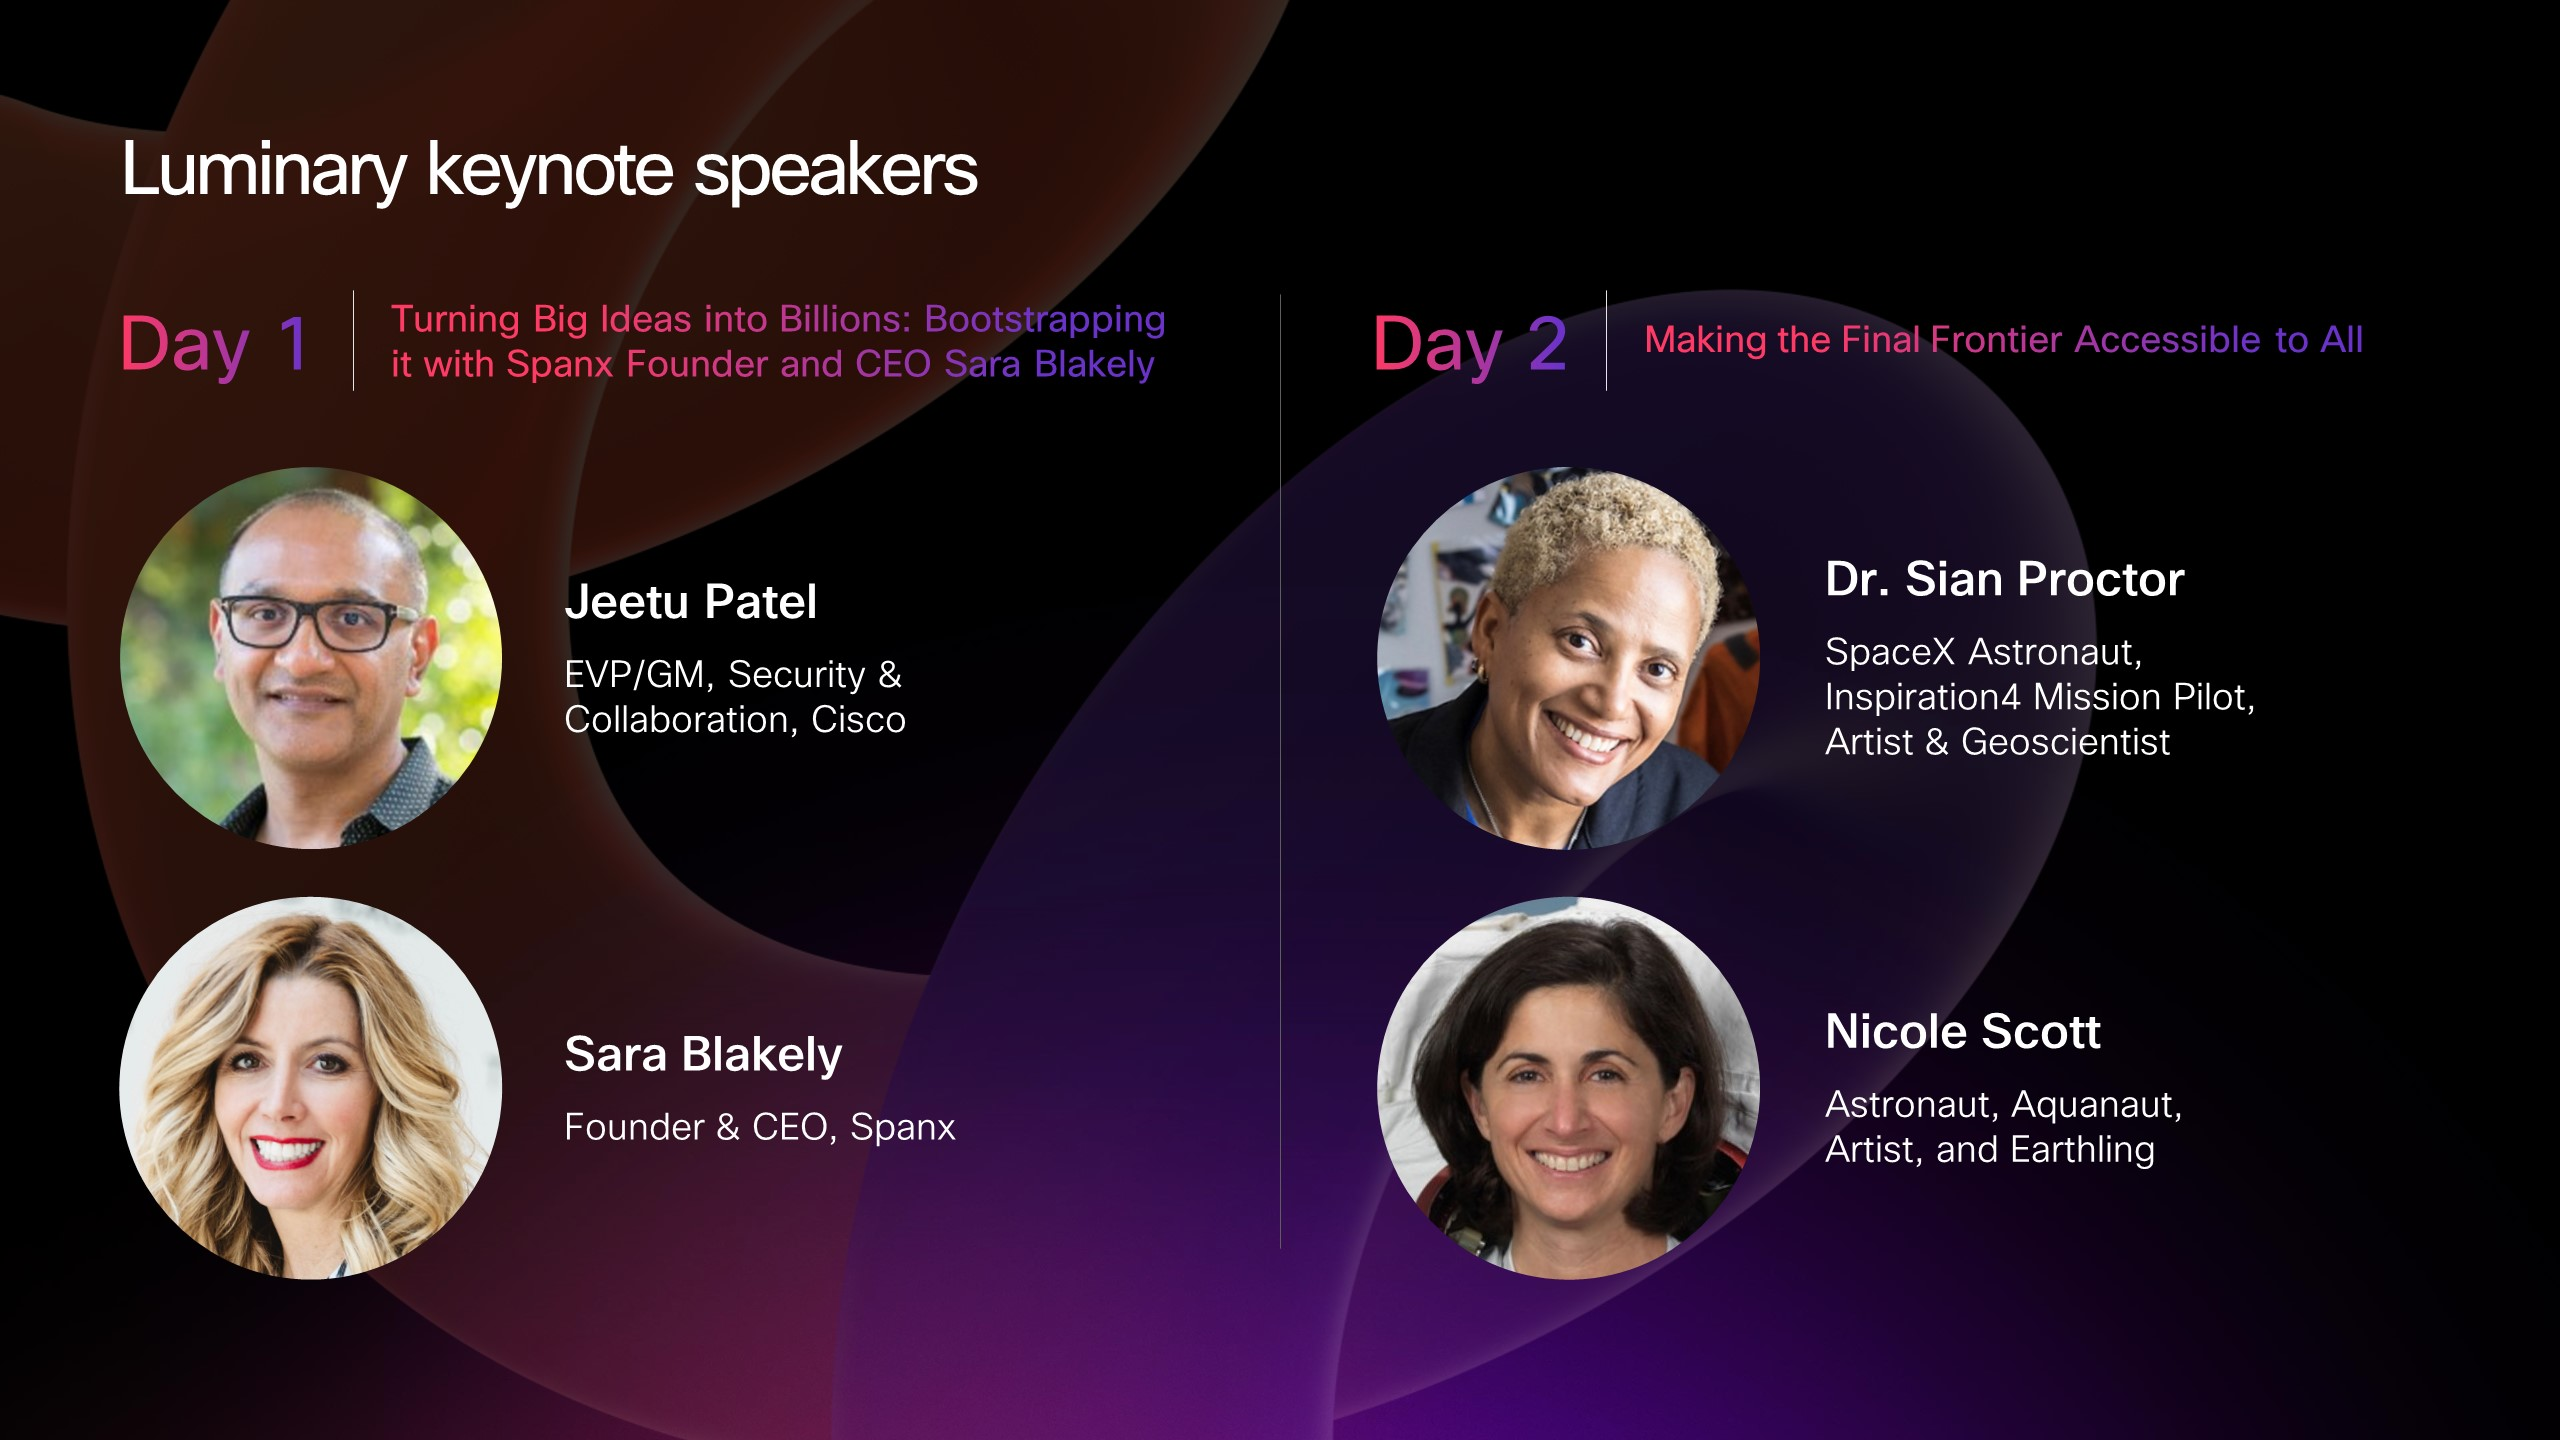 Day 1 and day 2 speakers(5)